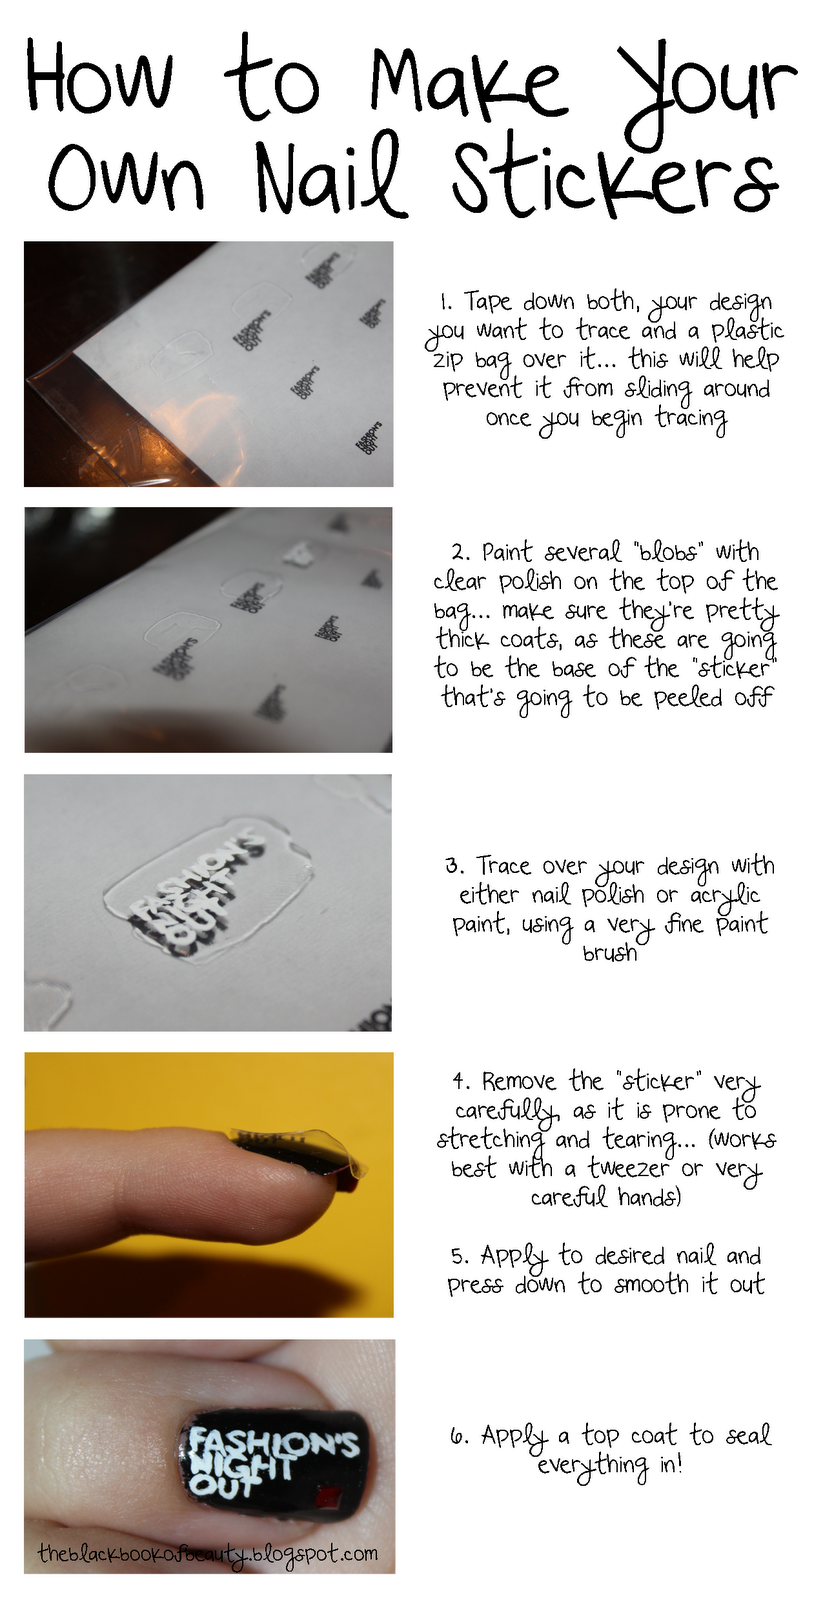 Black Book Of Beauty How To Make Your Own Nail Stickers